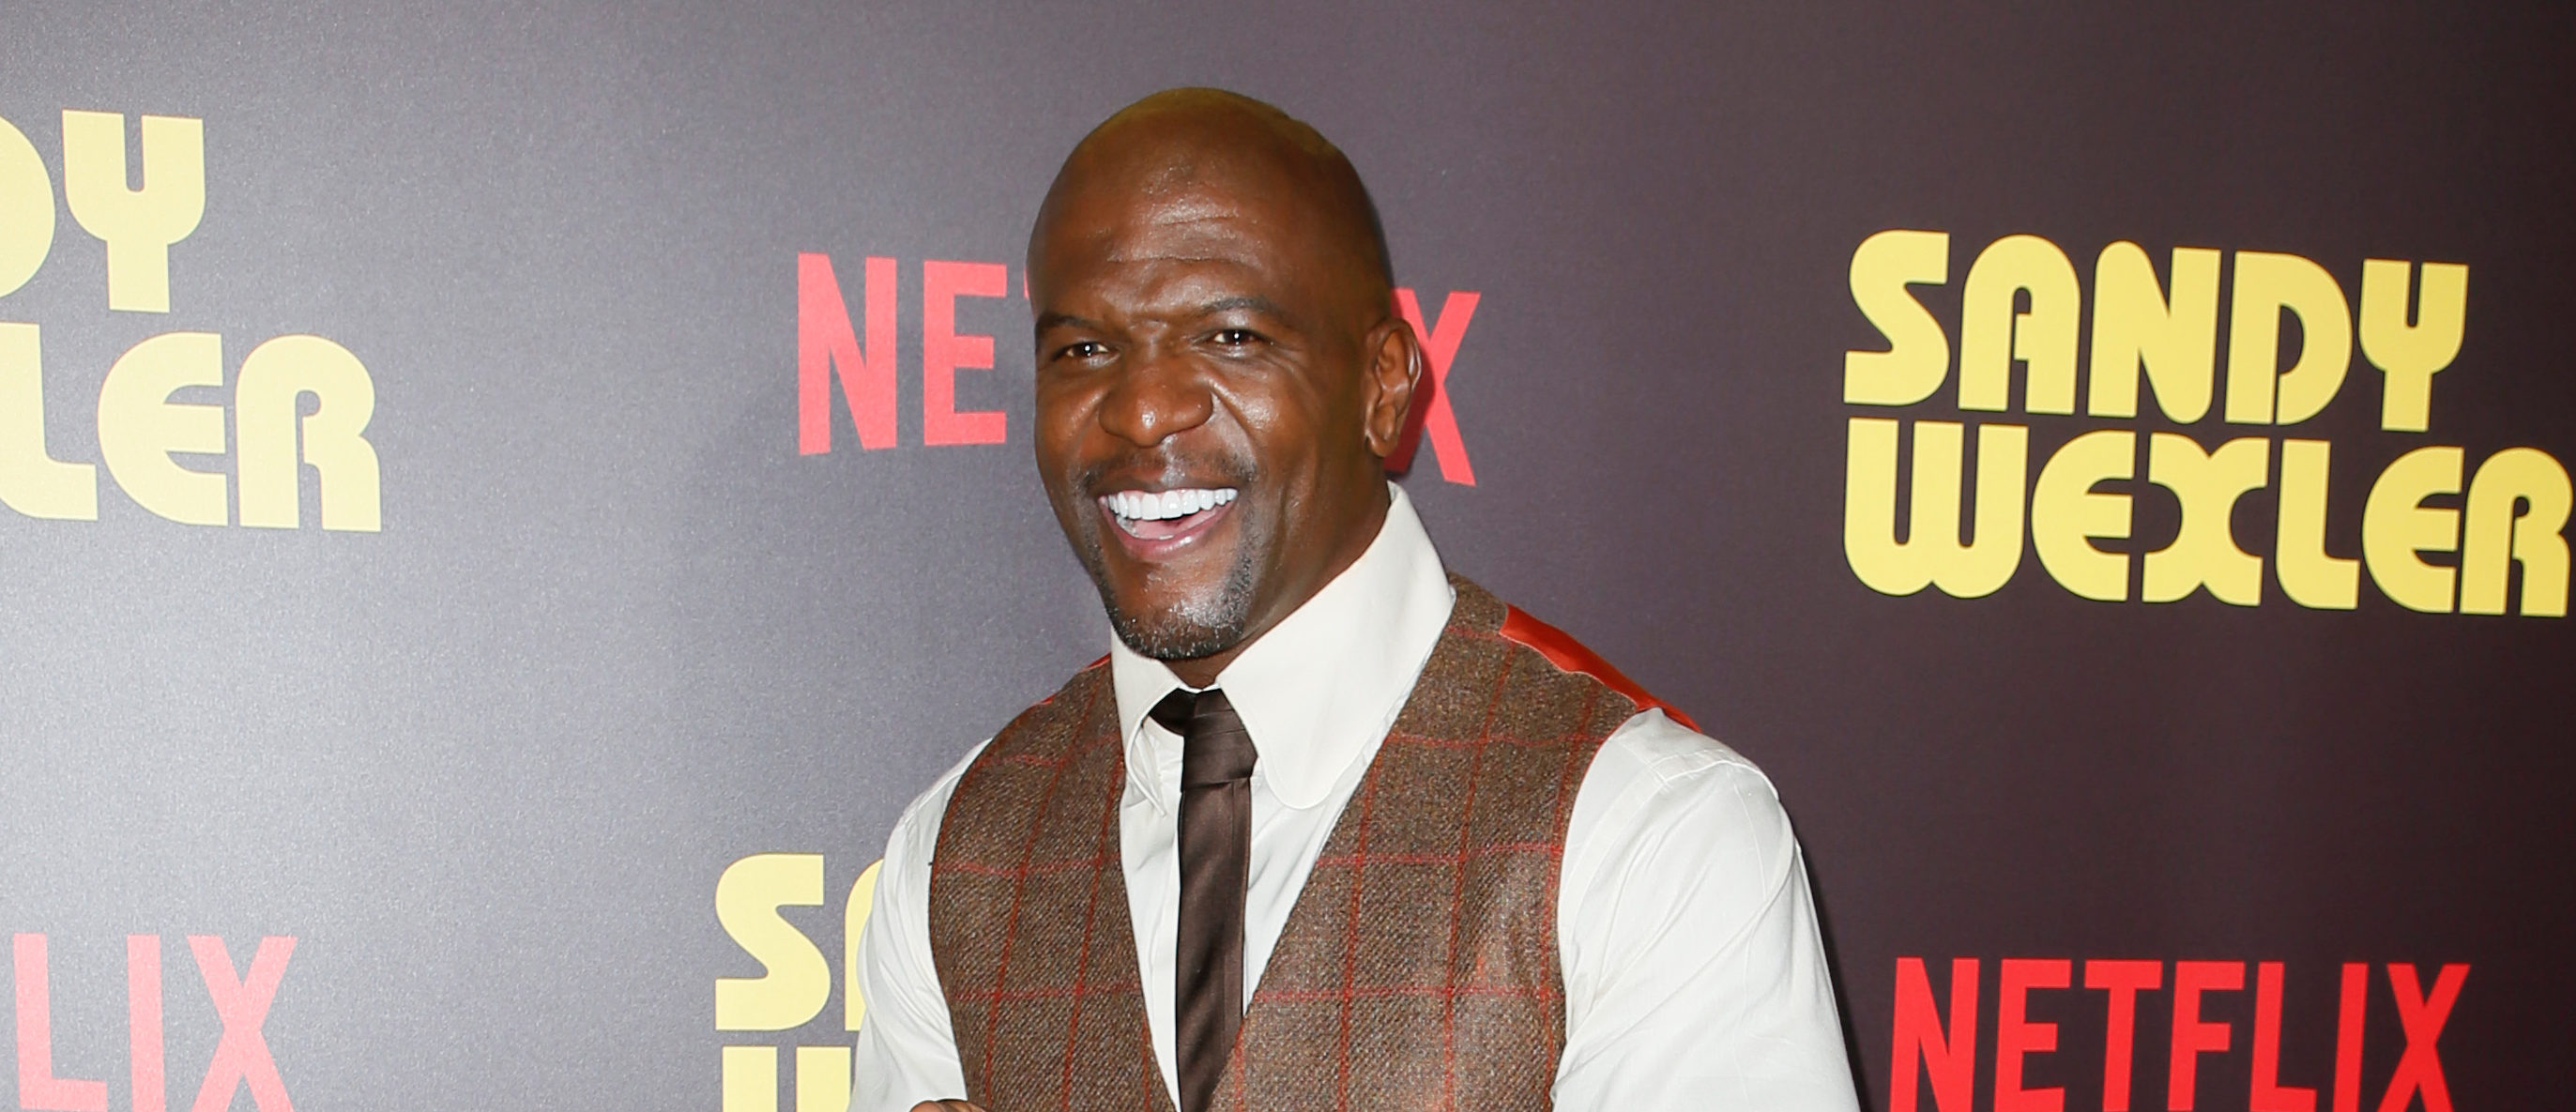 """Actor Terry Crews poses at a premiere for the Netflix original film """"Sandy Wexler"""" in Los Angeles, California, April 6, 2017. REUTERS/Danny Moloshok - RC1F972B3600"""